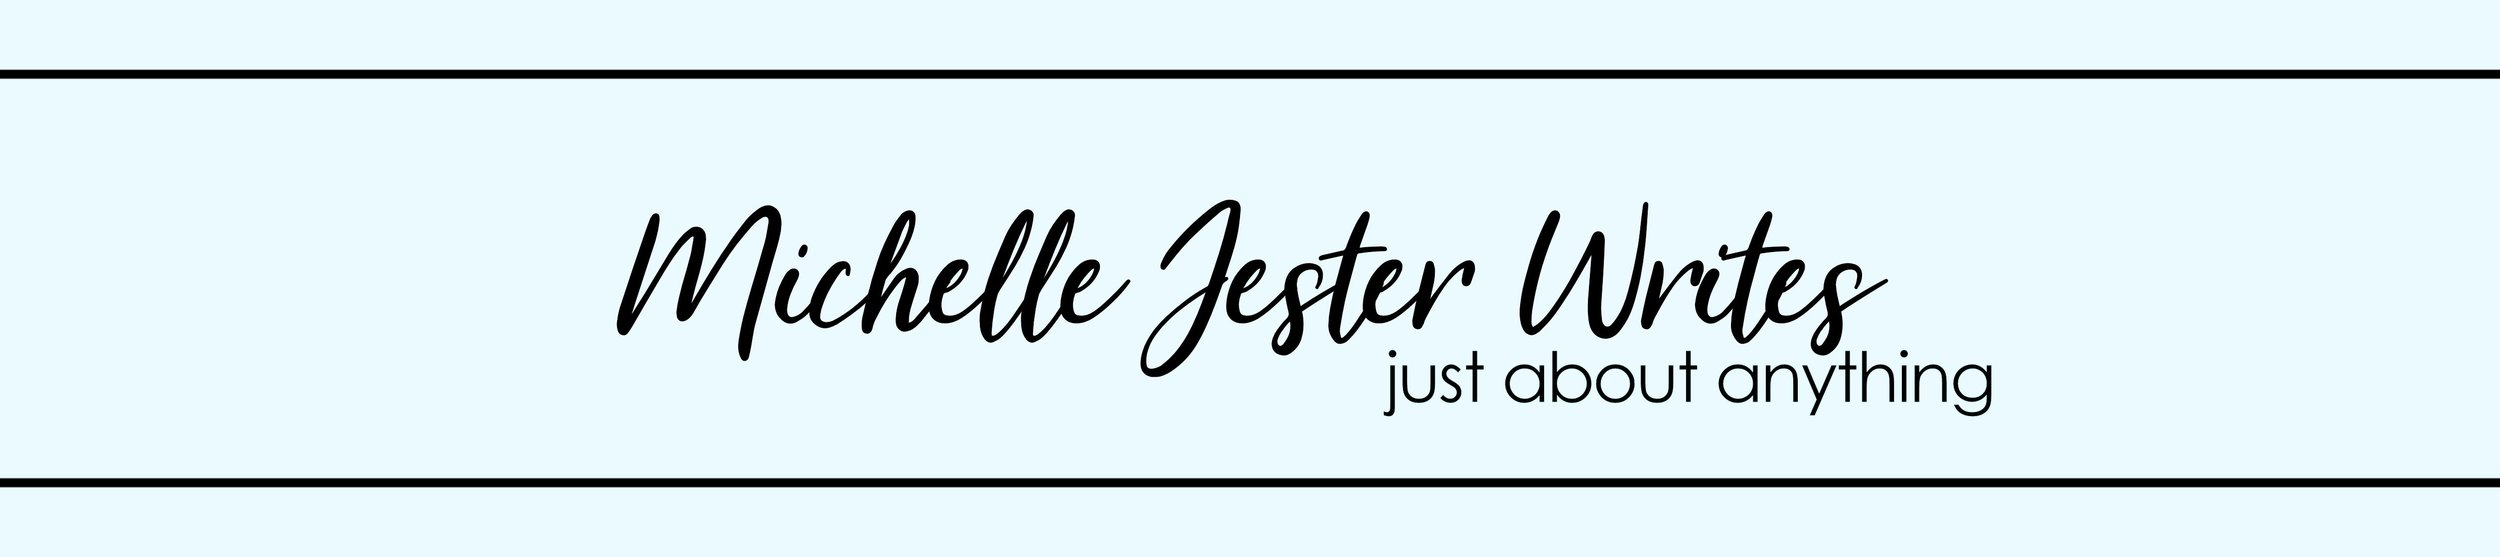 Michelle Jester writes MAIN web banner4a lighter.jpg